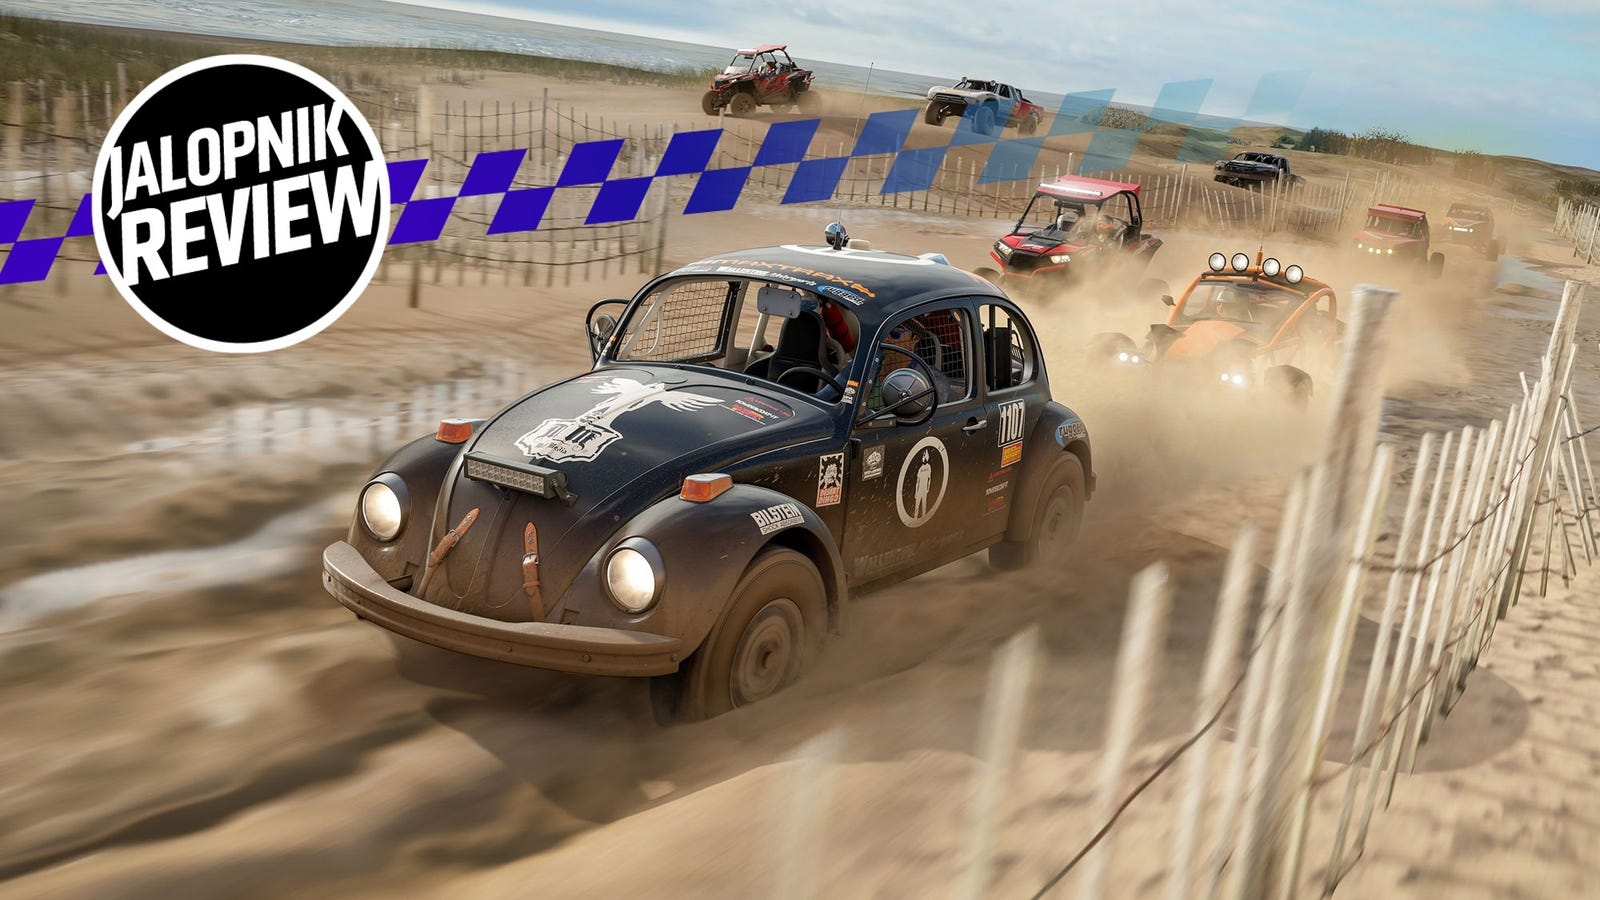 Forza Horizon 4 Turns Your World Into an Off-Road, Airborne